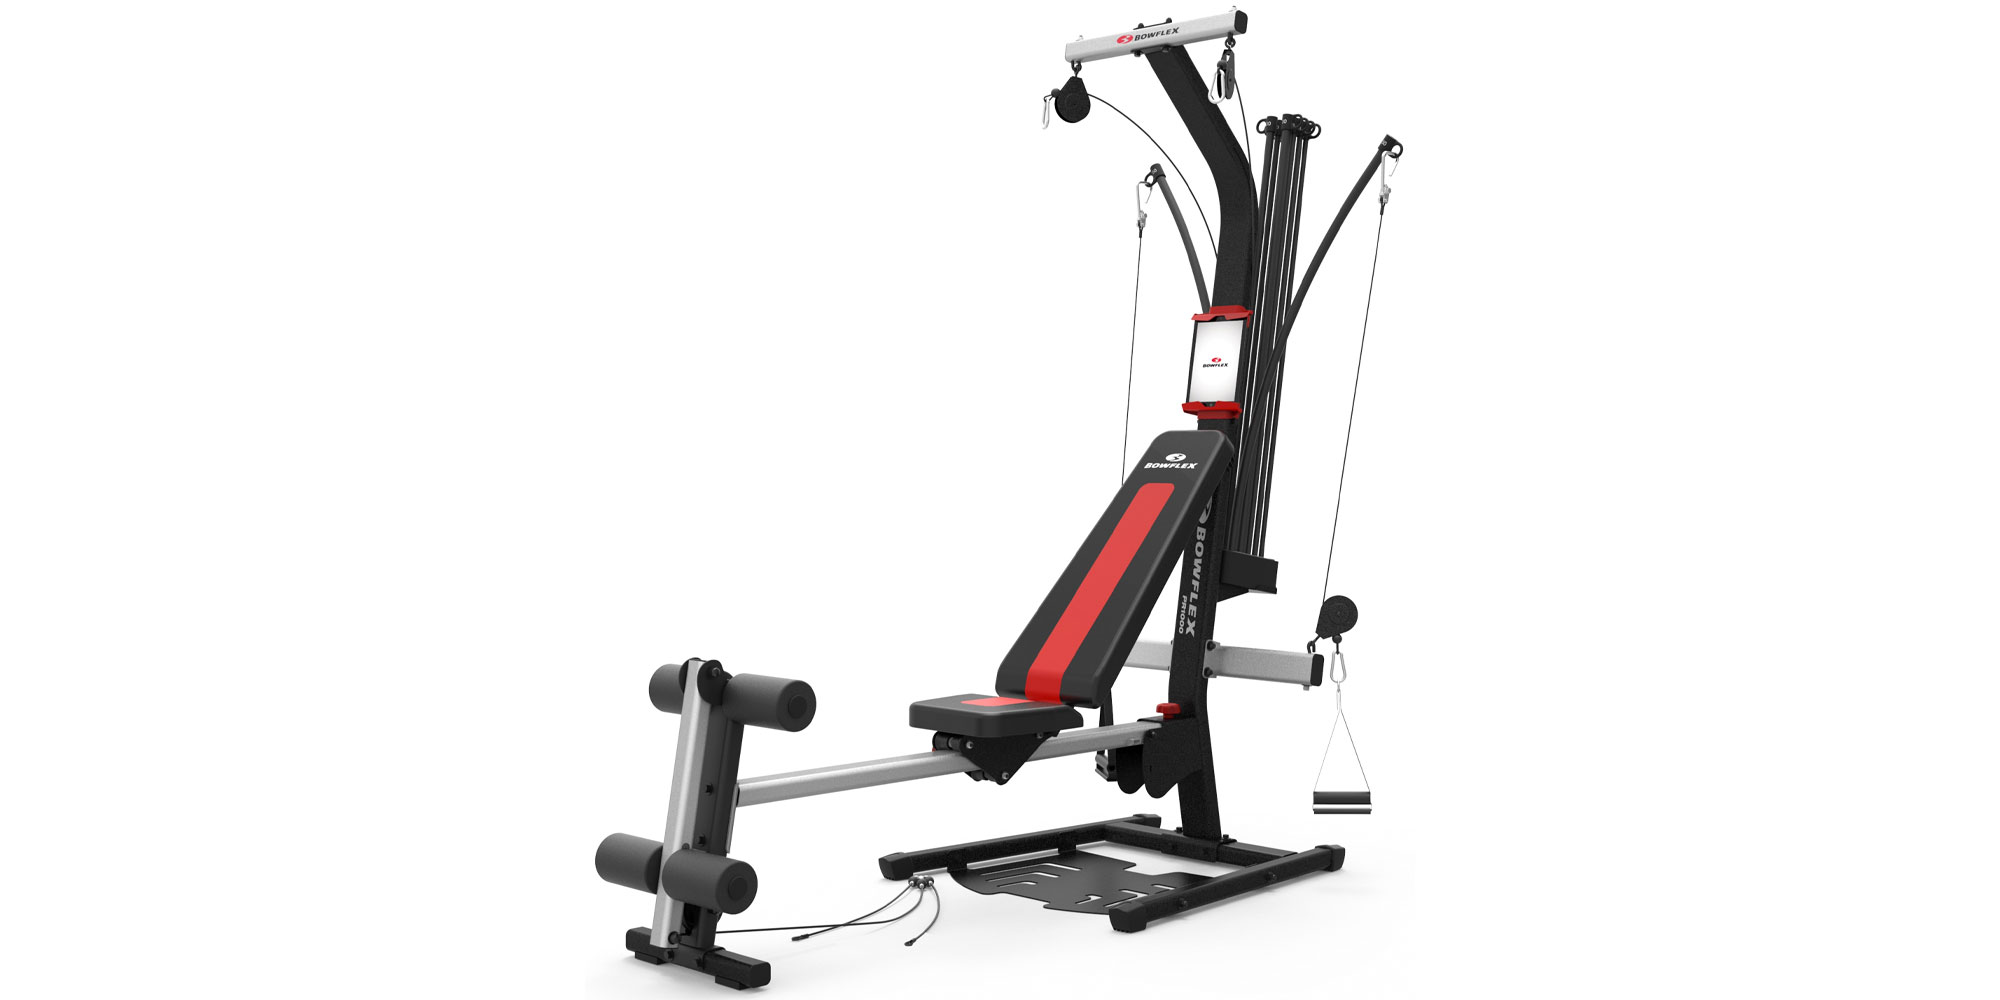 Amazon has the Bowflex Home Gym on sale for $360 shipped today (Reg. $400+) - 9to5Toys